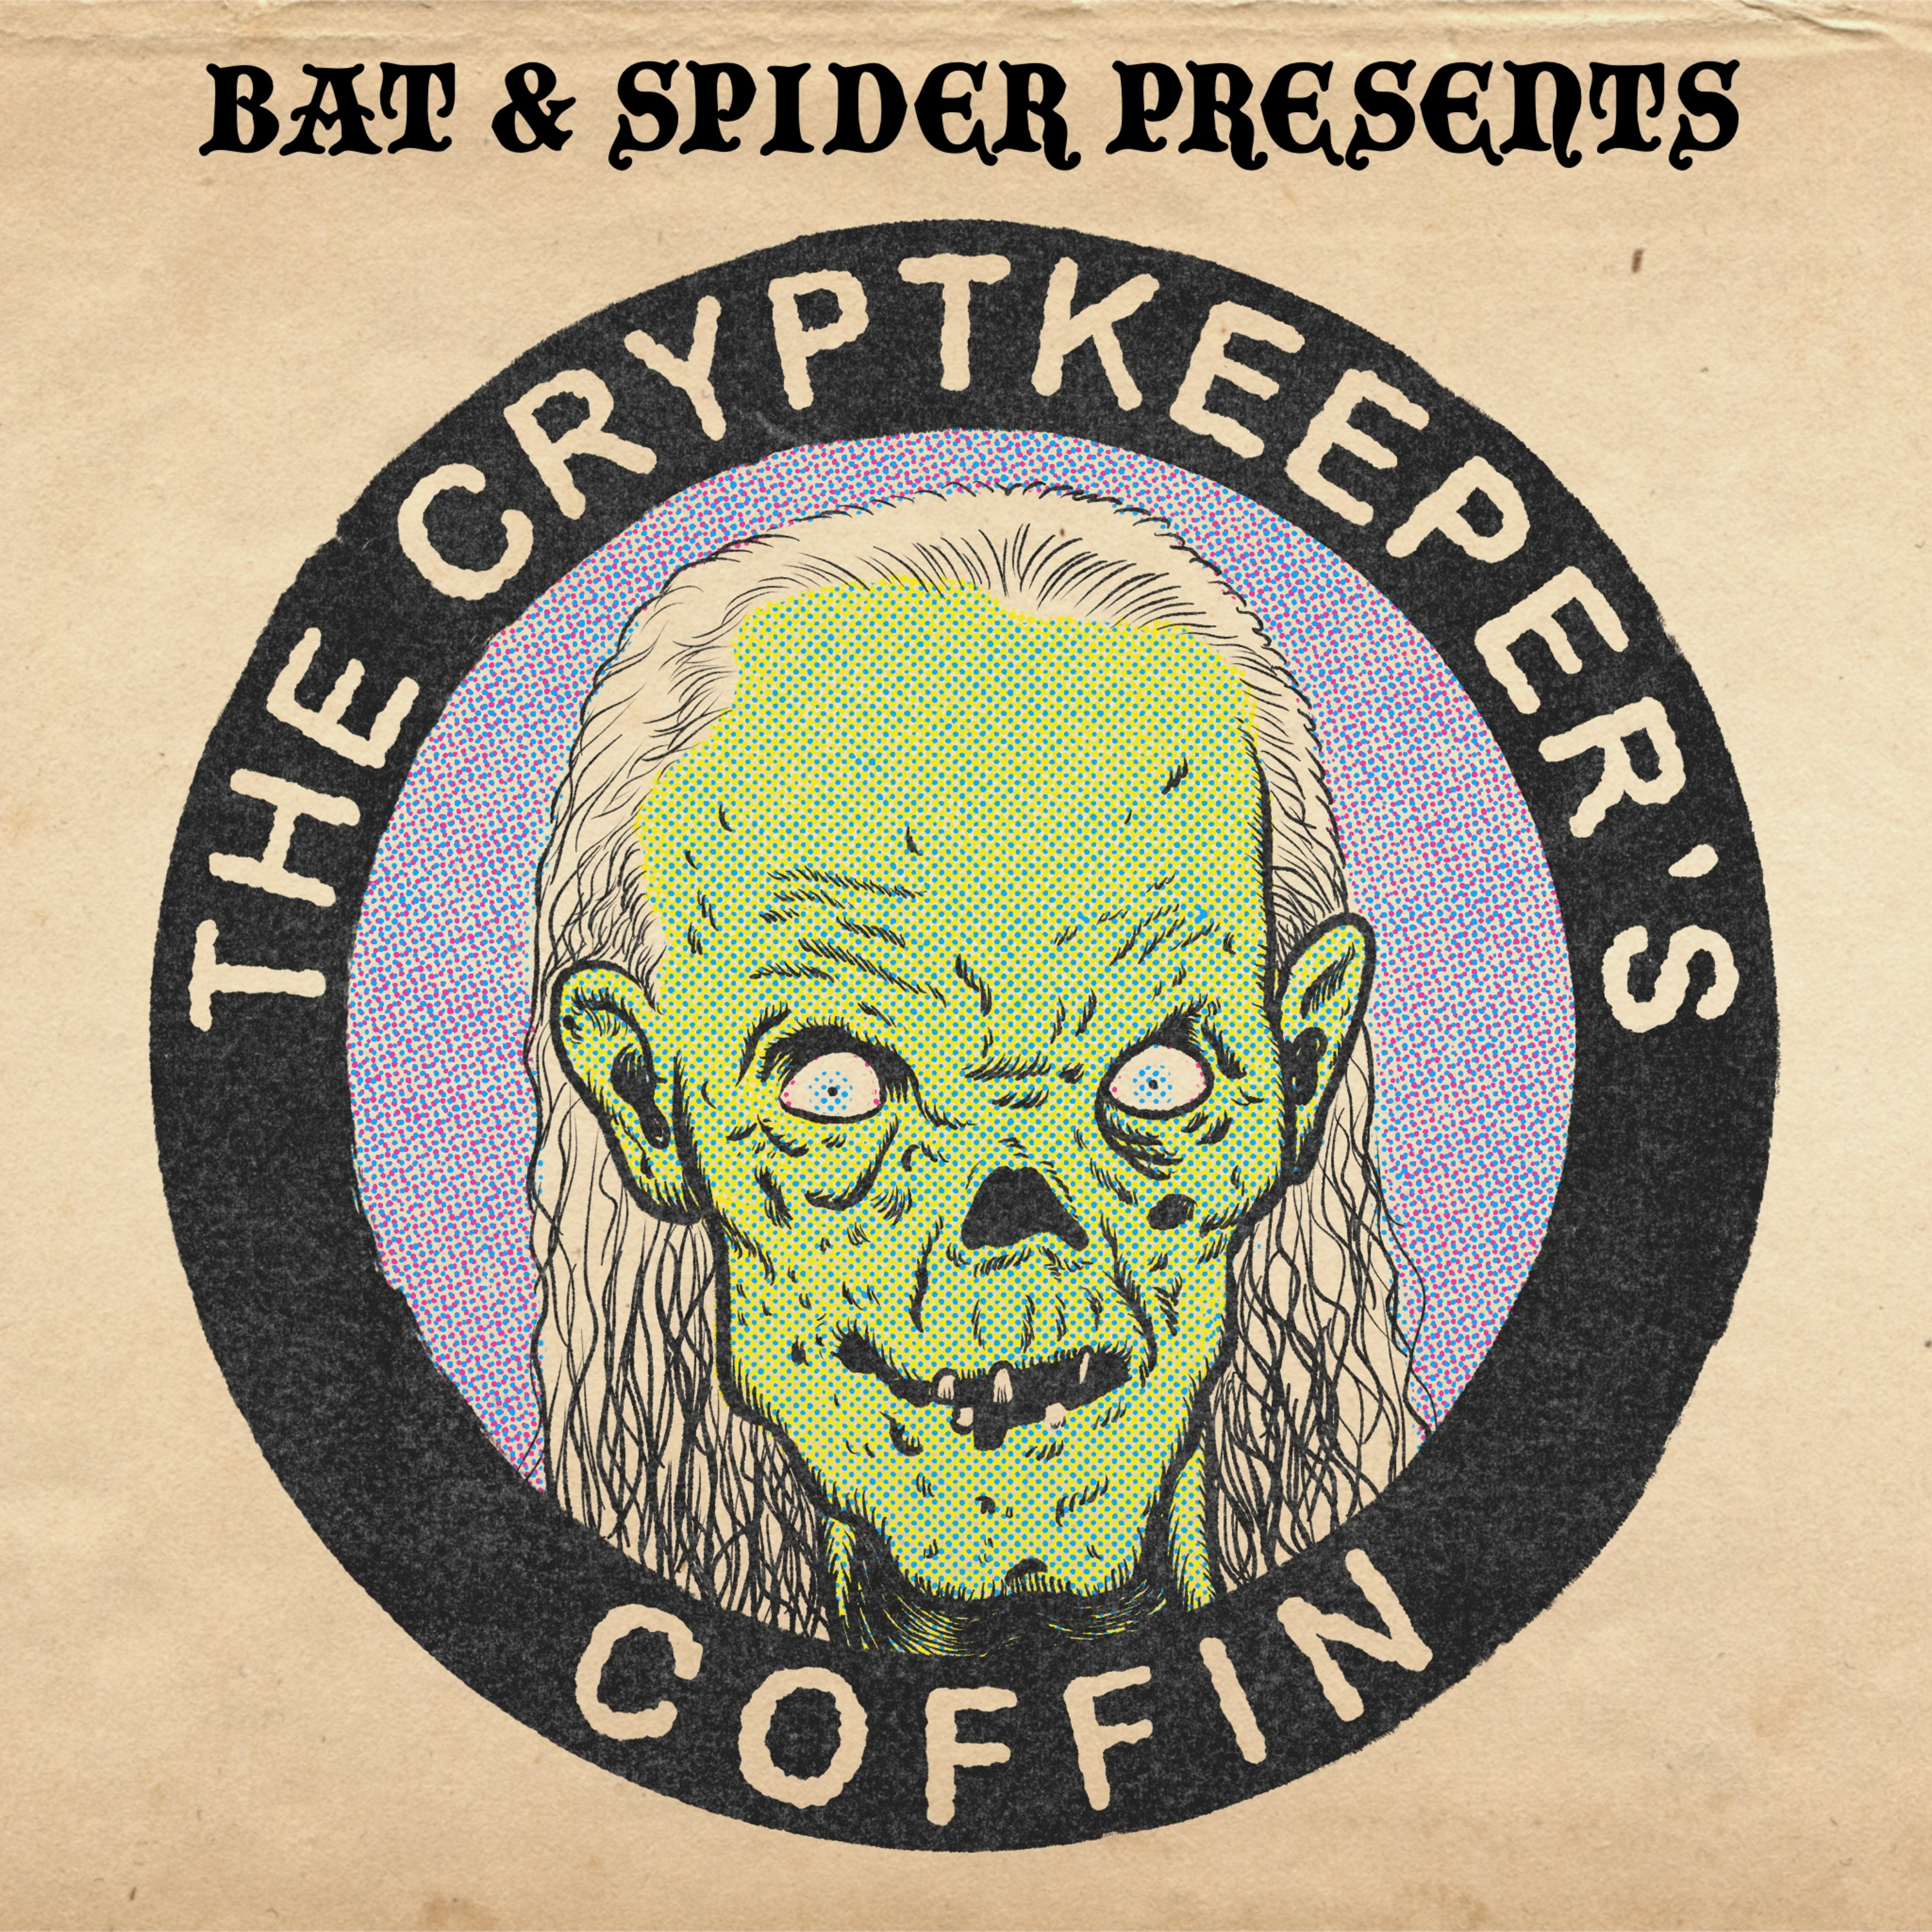 The Crypt Keeper's Coffin 004 - Only Sin Deep